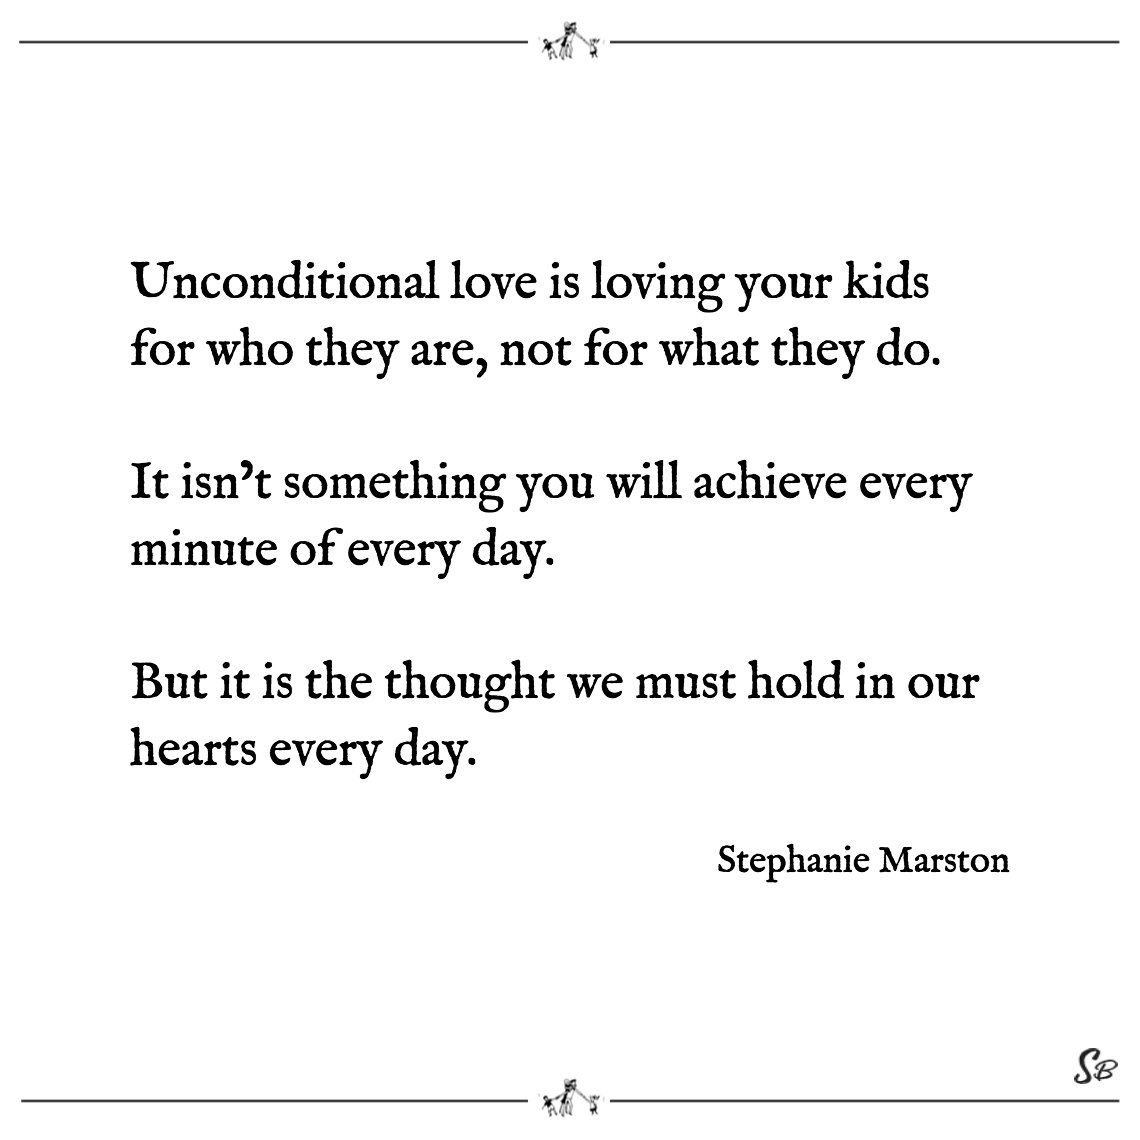 Unconditional love is loving your kids for who they are, not for what they do. it isn't something you will achieve every minute of every day. stephanie marston